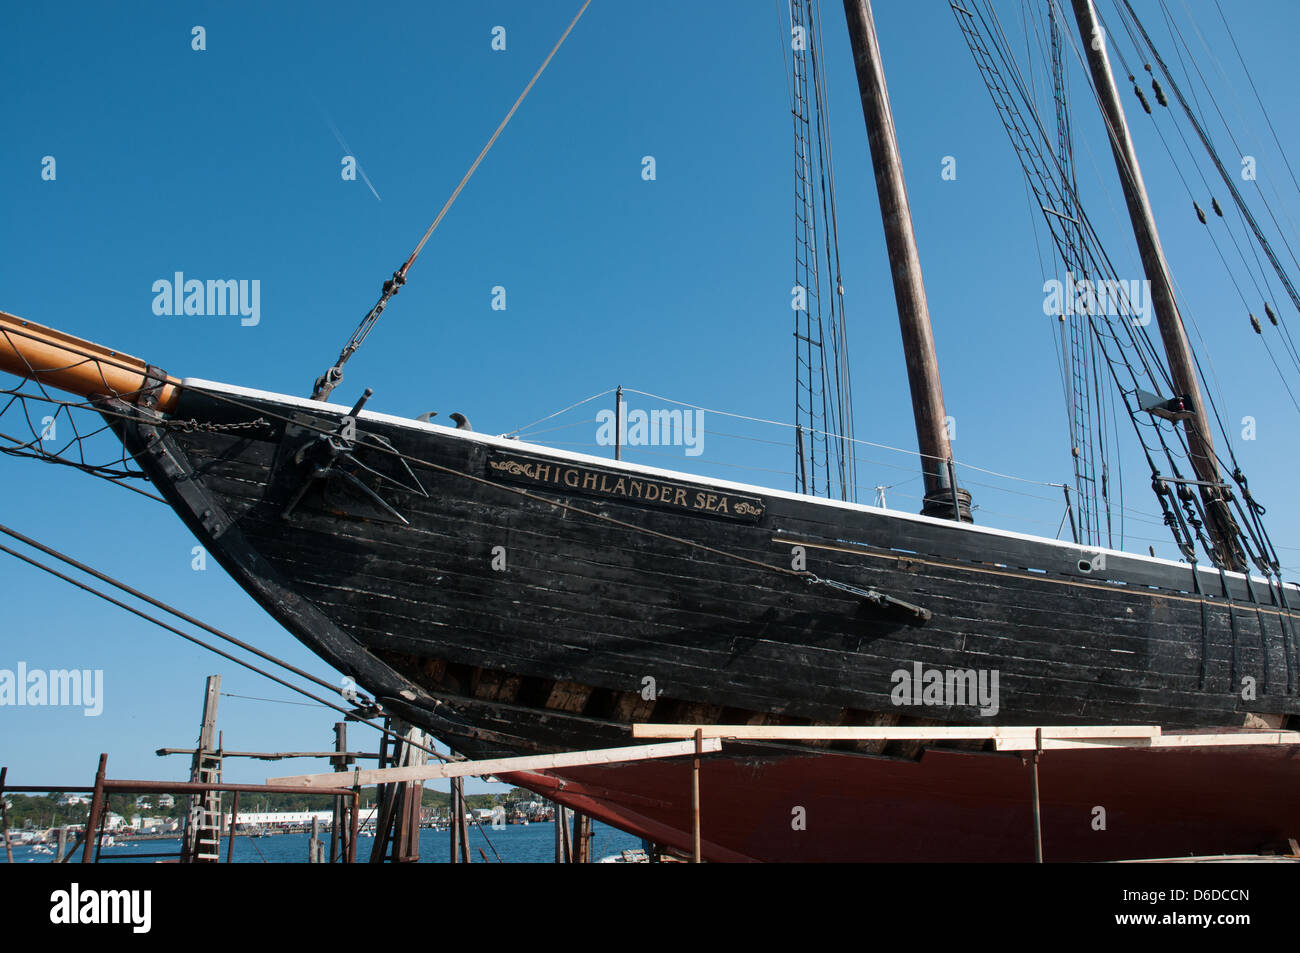 Schooner HIghlander Sea is 'on the ways' for repairs at the Gloucester Marine Railways, Gloucester, MA - Stock Image